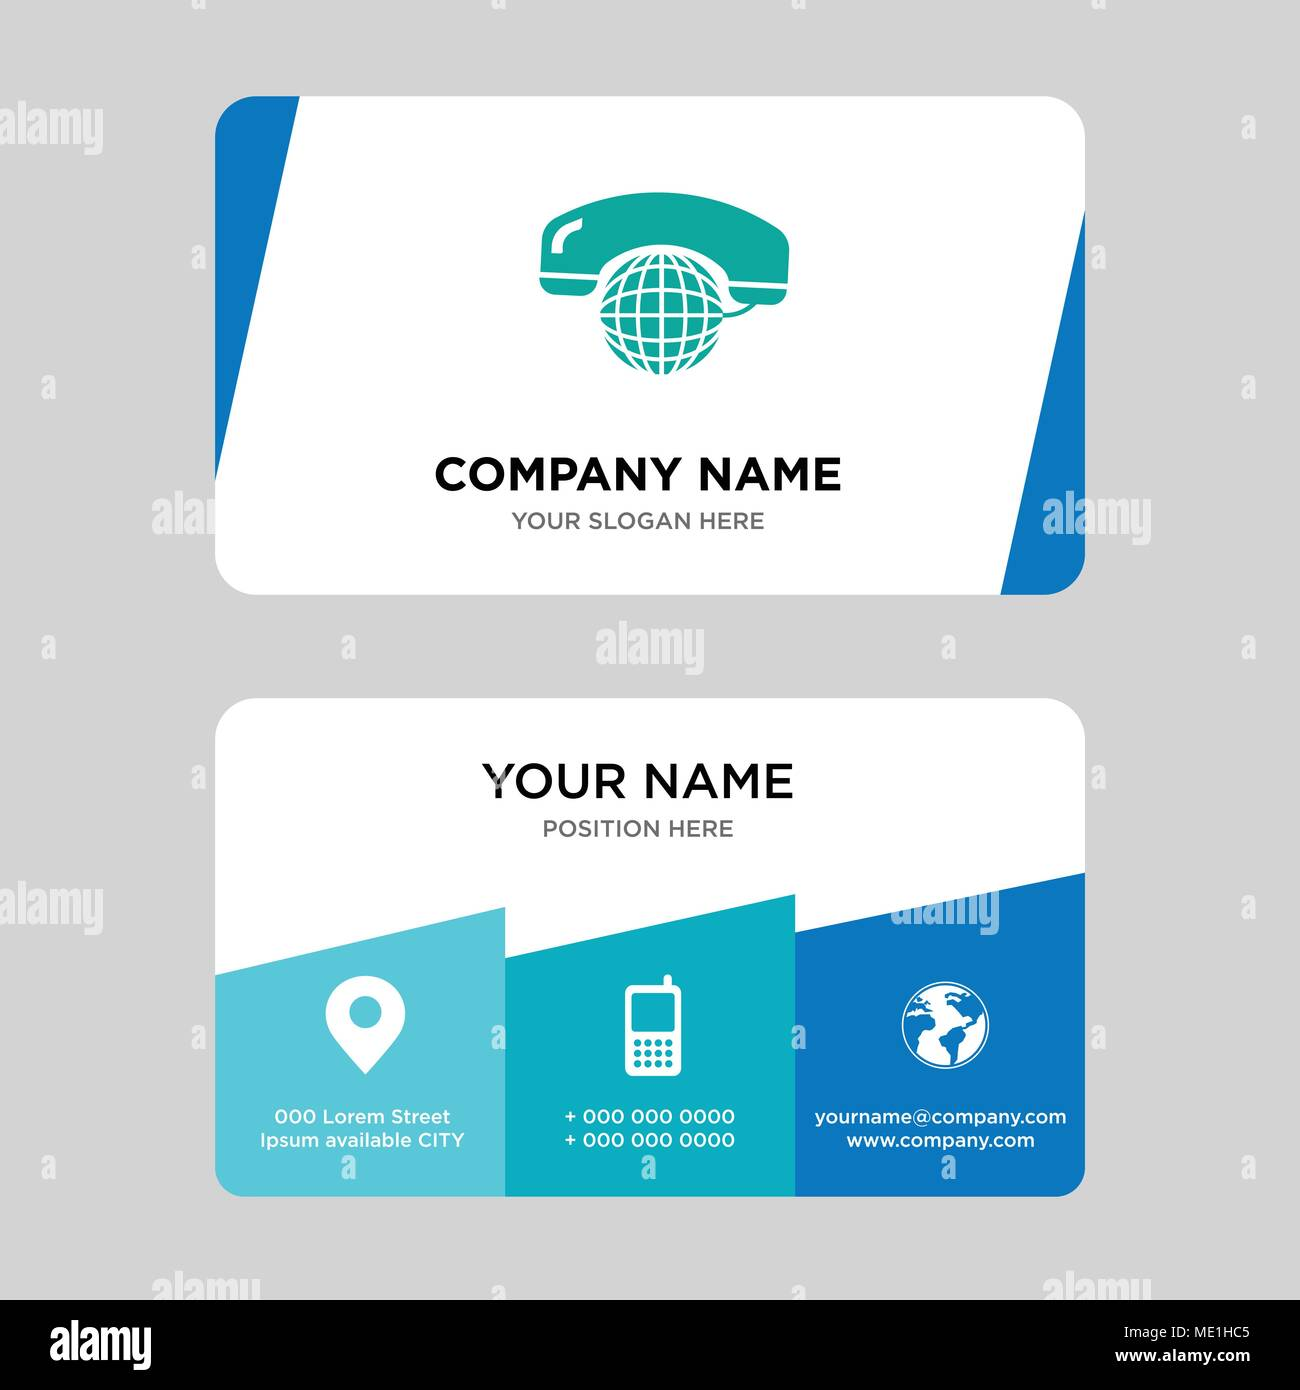 International calling service business card design template international calling service business card design template visiting for your company modern creative and clean identity card vector illustration colourmoves